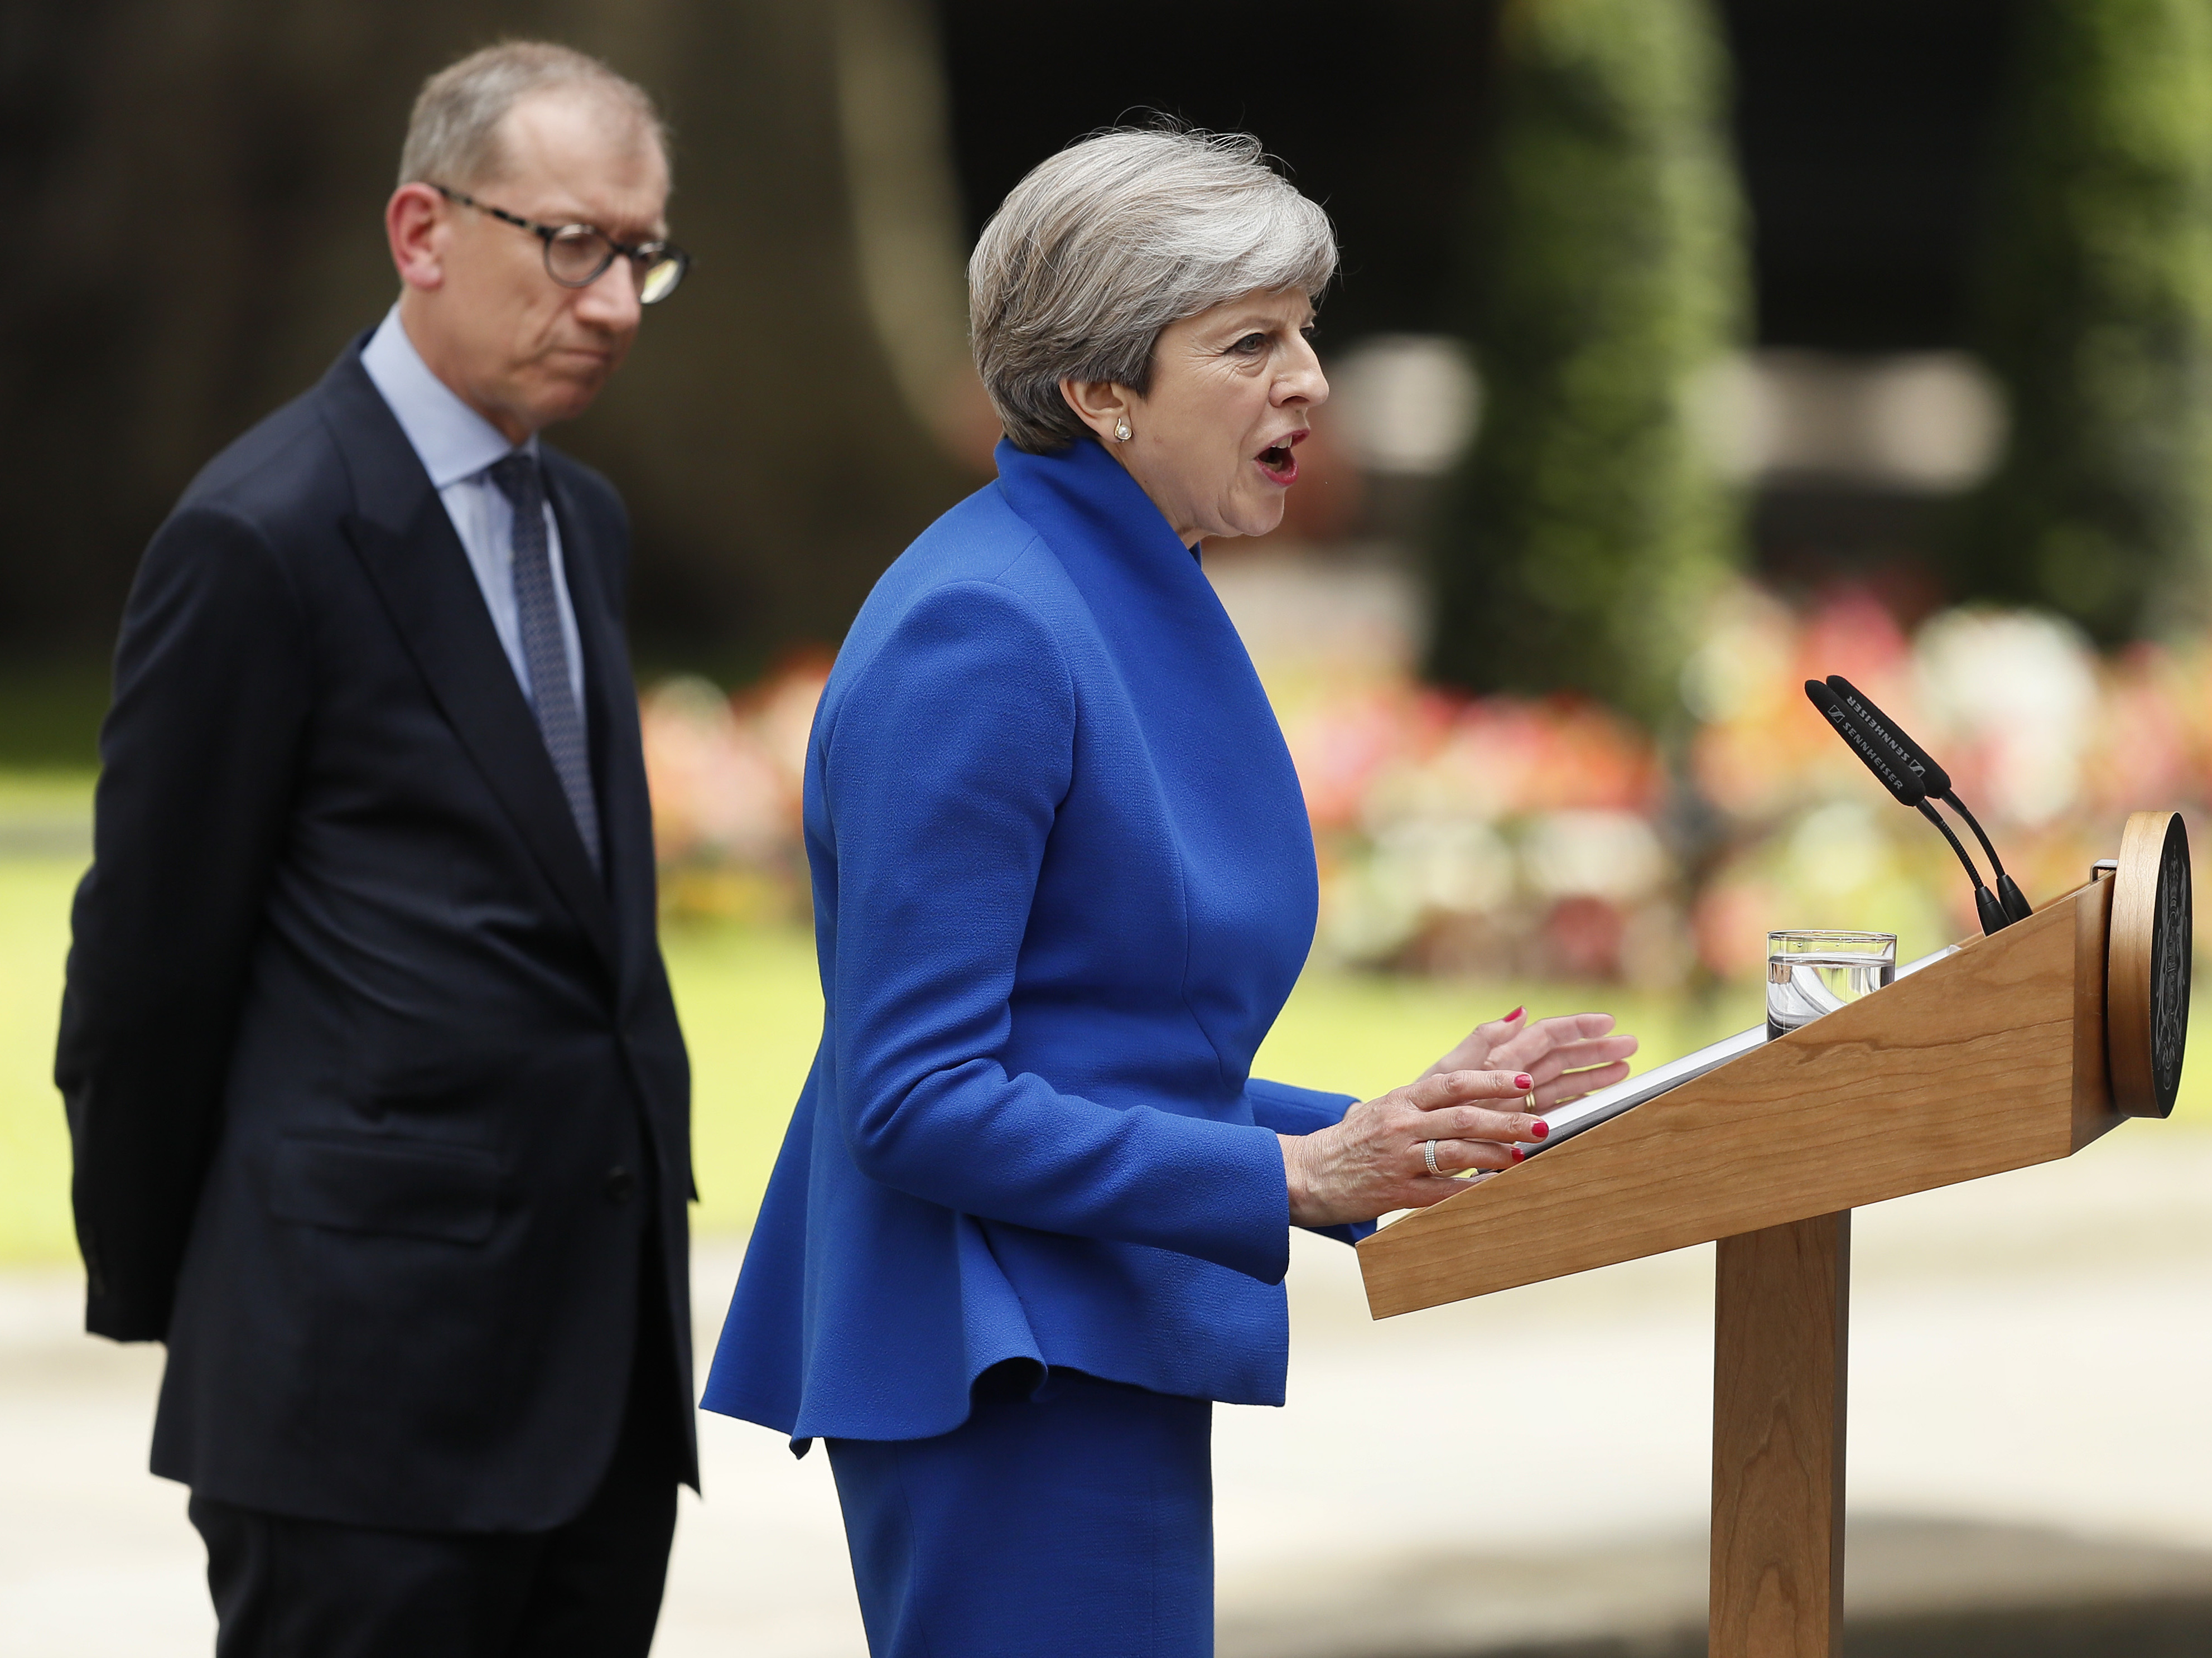 May faces calls to resign as election hangs in balance